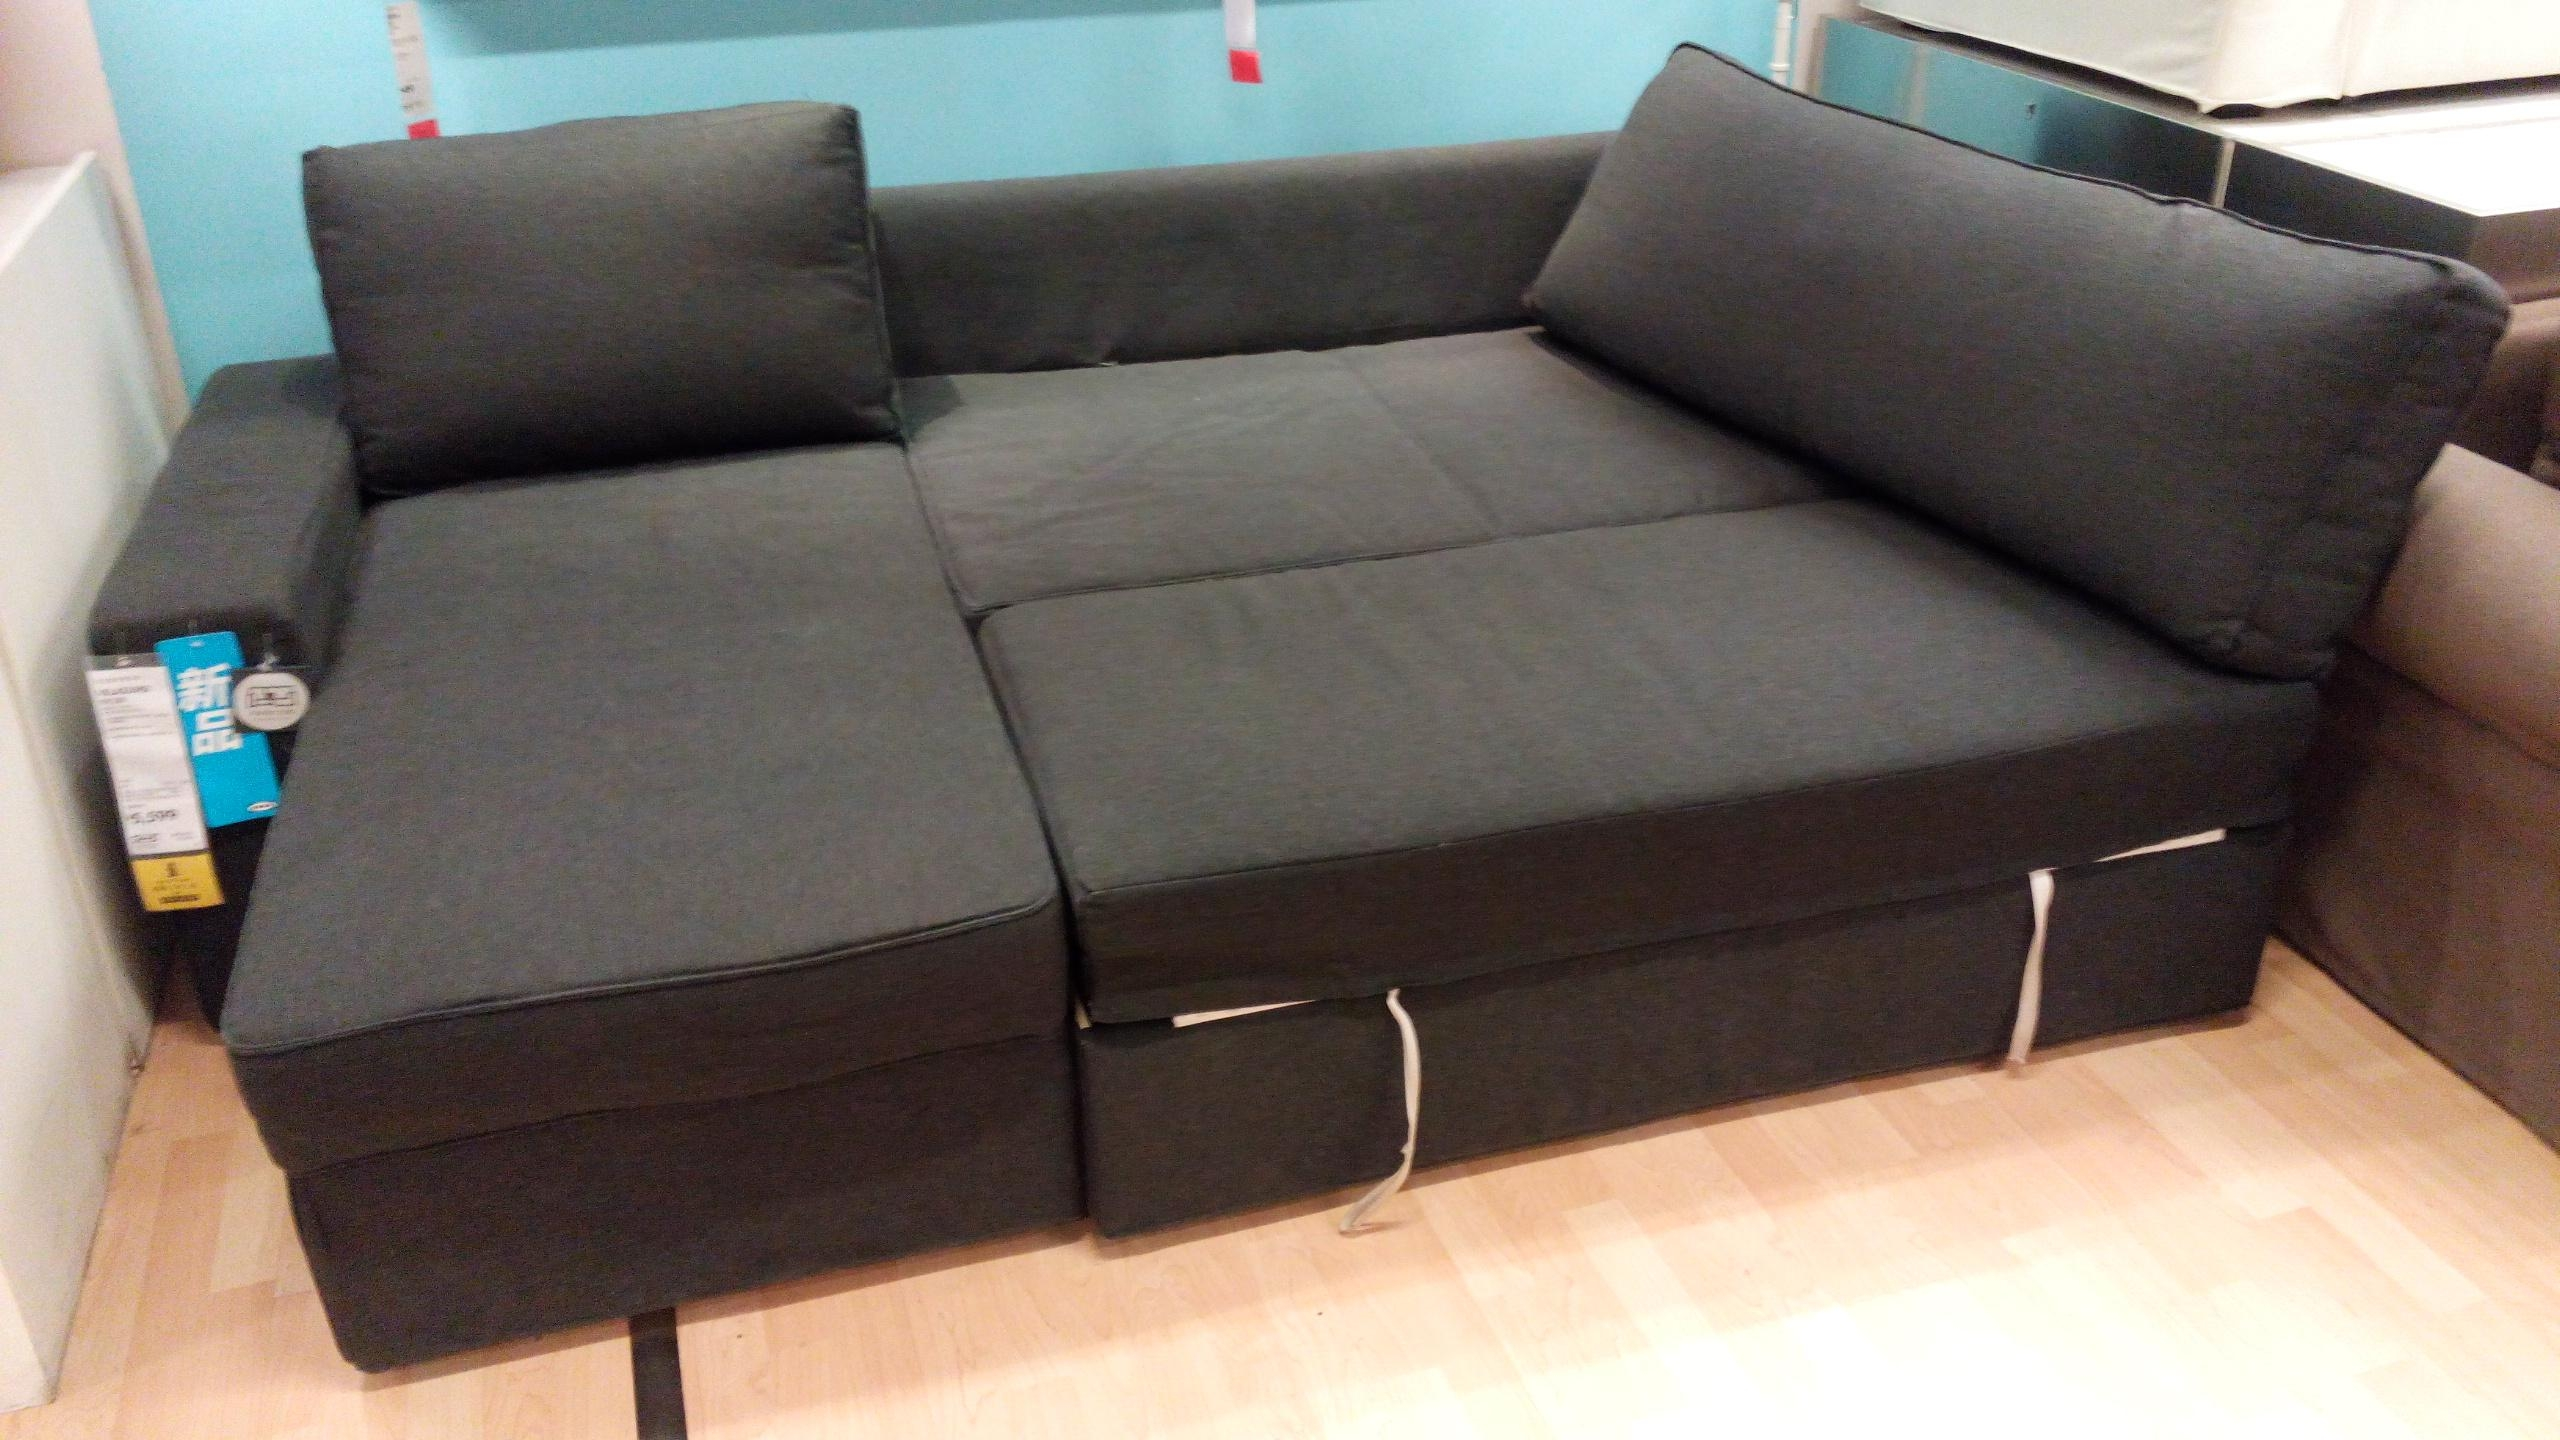 Furniture: Luxury Sofa Bed Ikea For Home Furniture Ideas — Nysben With Regard To Corner Sofa Bed With Storage Ikea (View 14 of 20)